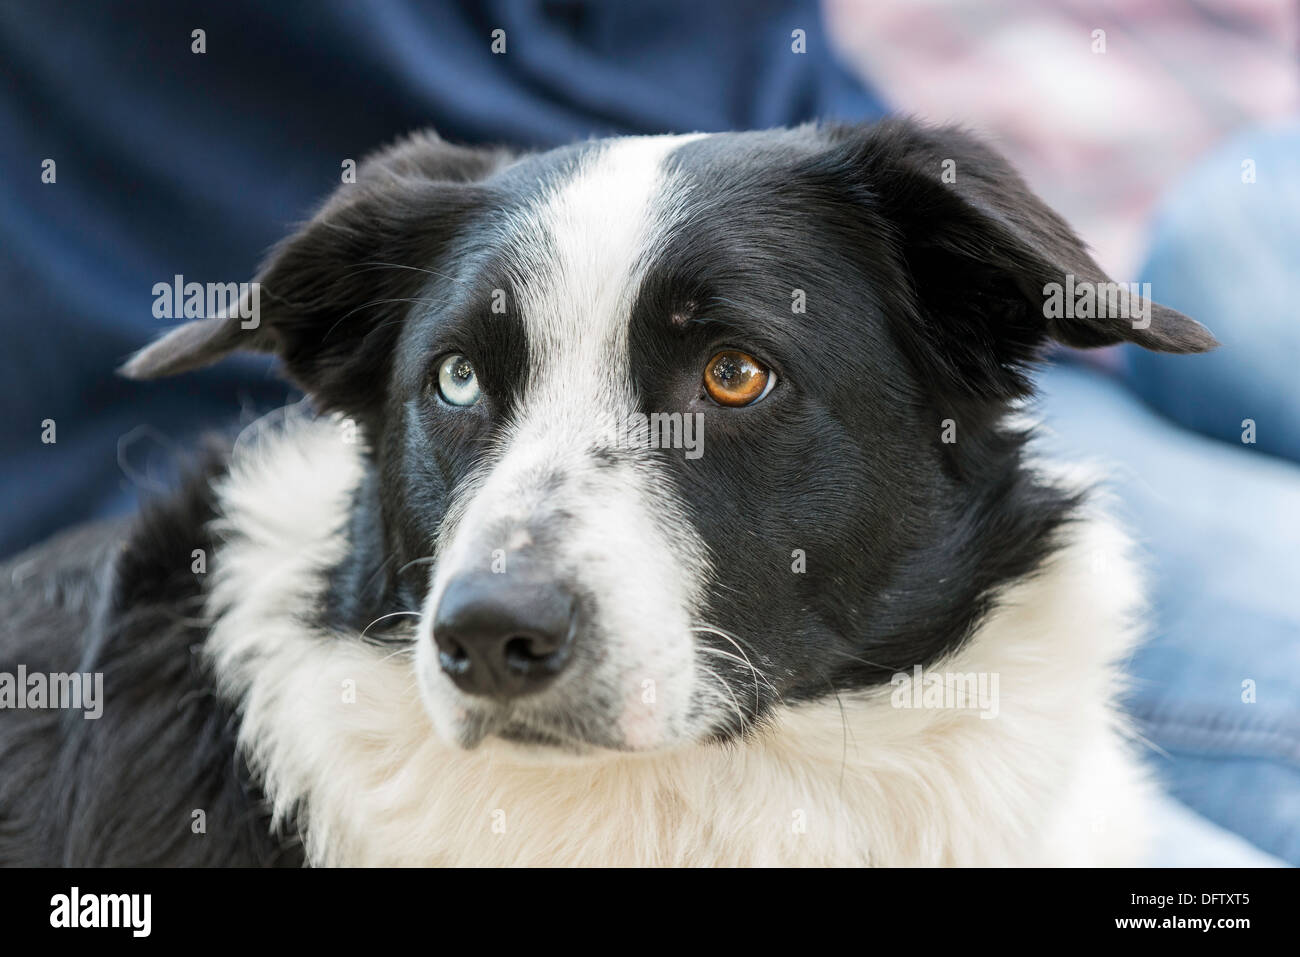 border collie sheep dog with one blue eye and one brown